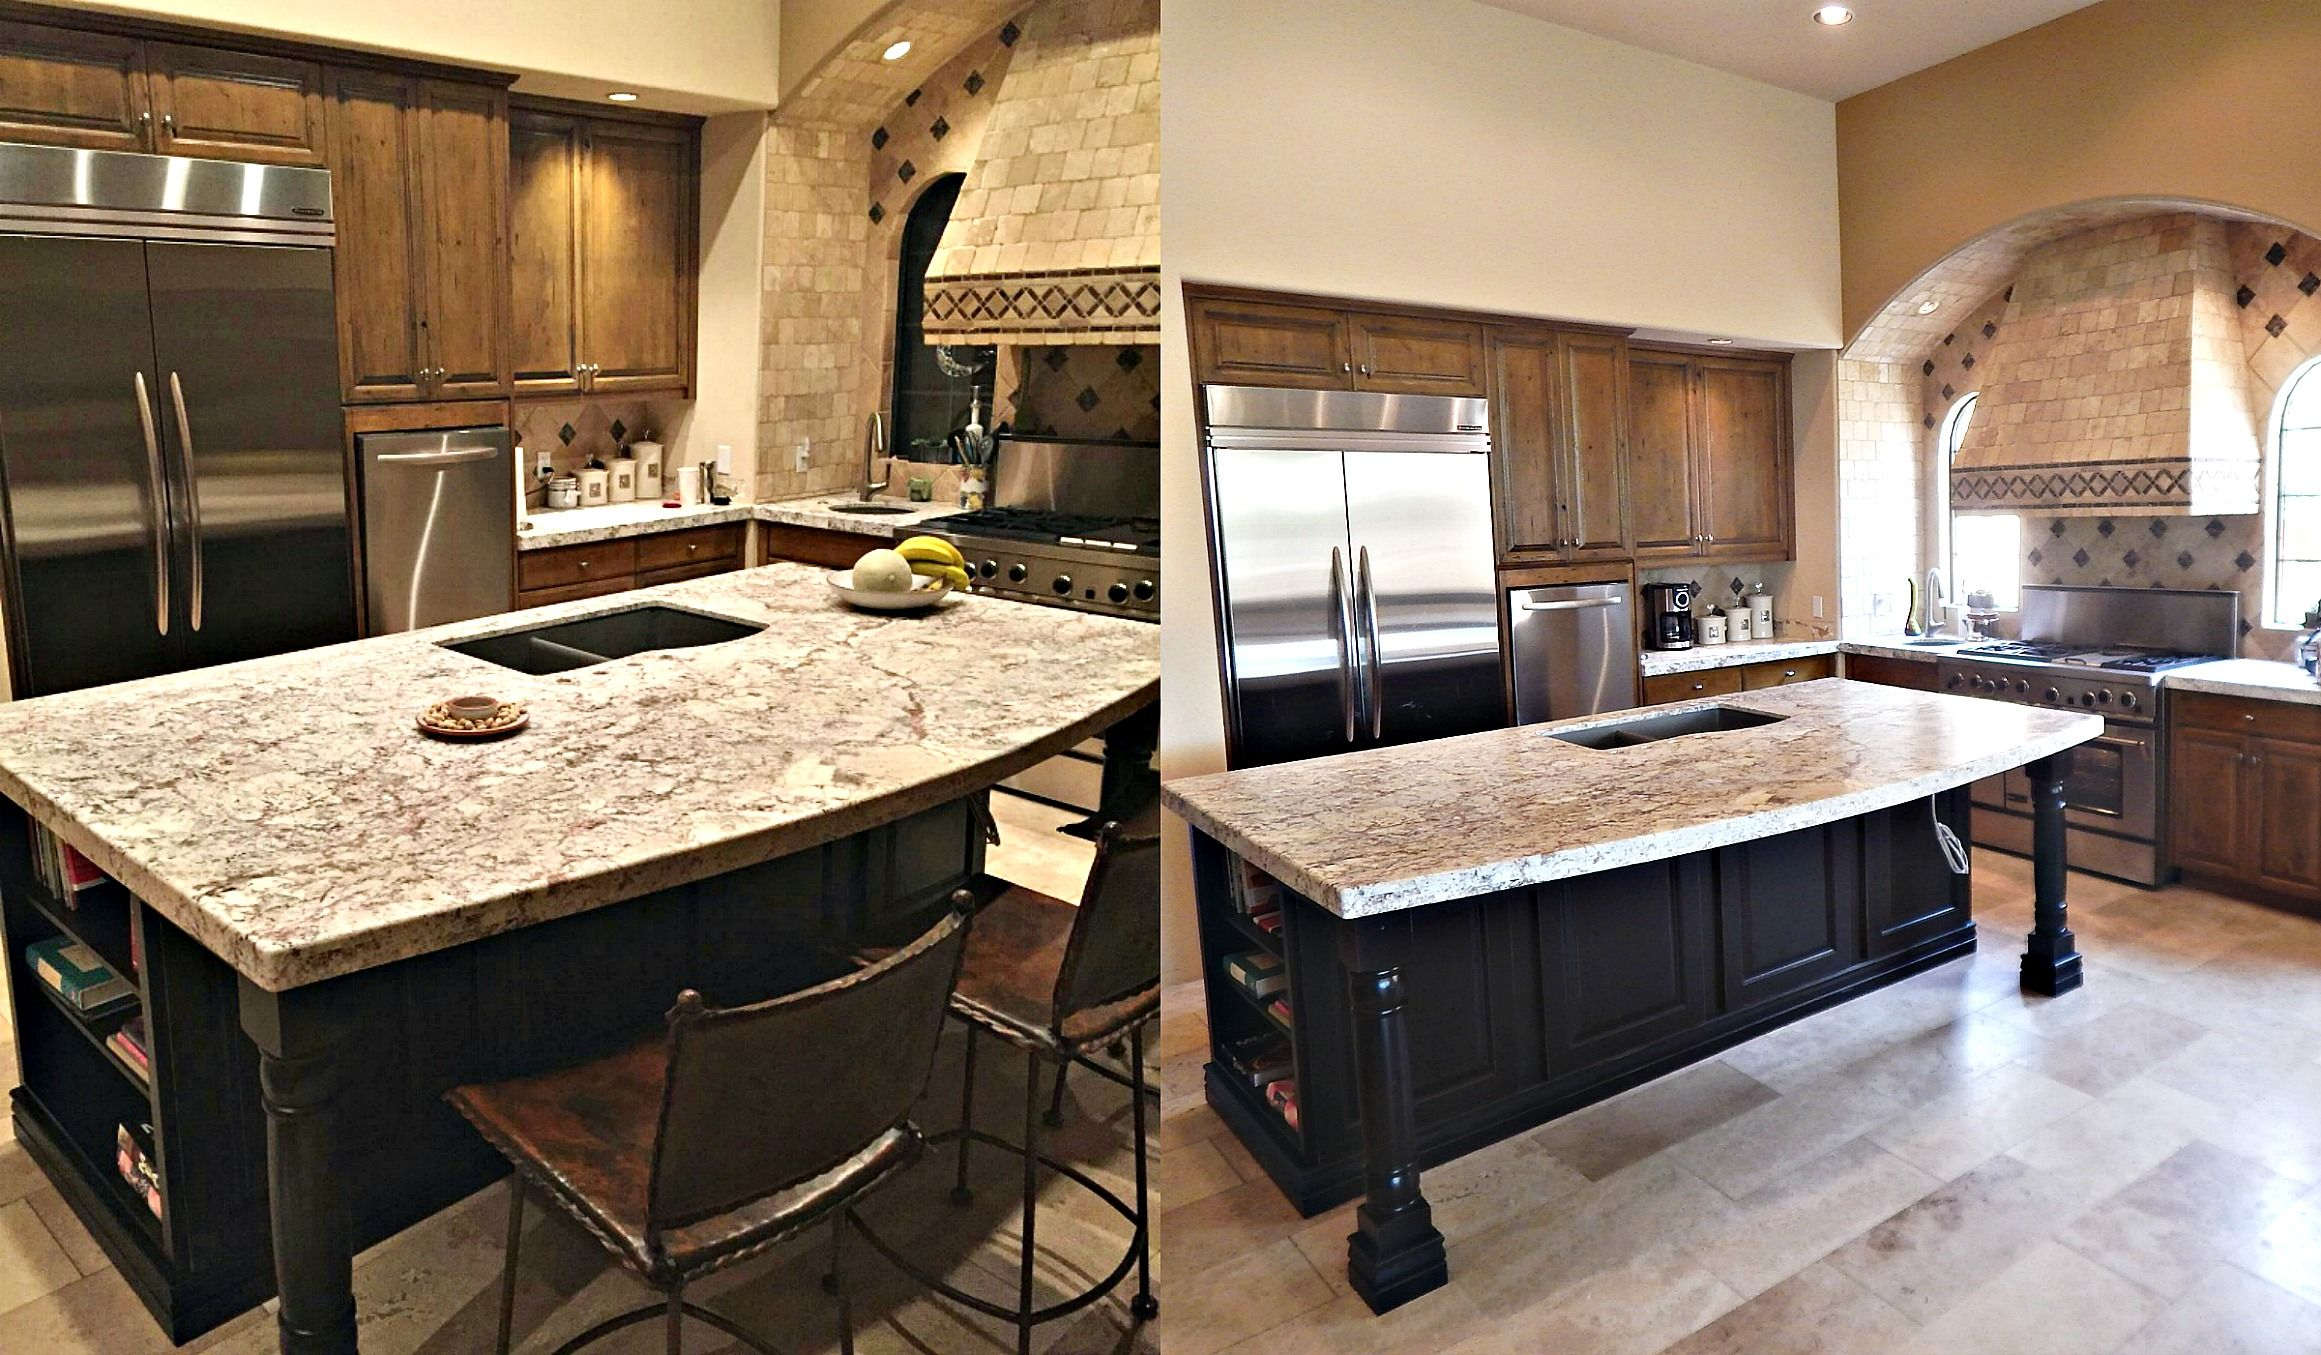 Kitchen Island Remodel Kitchen Island Remodel In Fountain Hills With White Springs